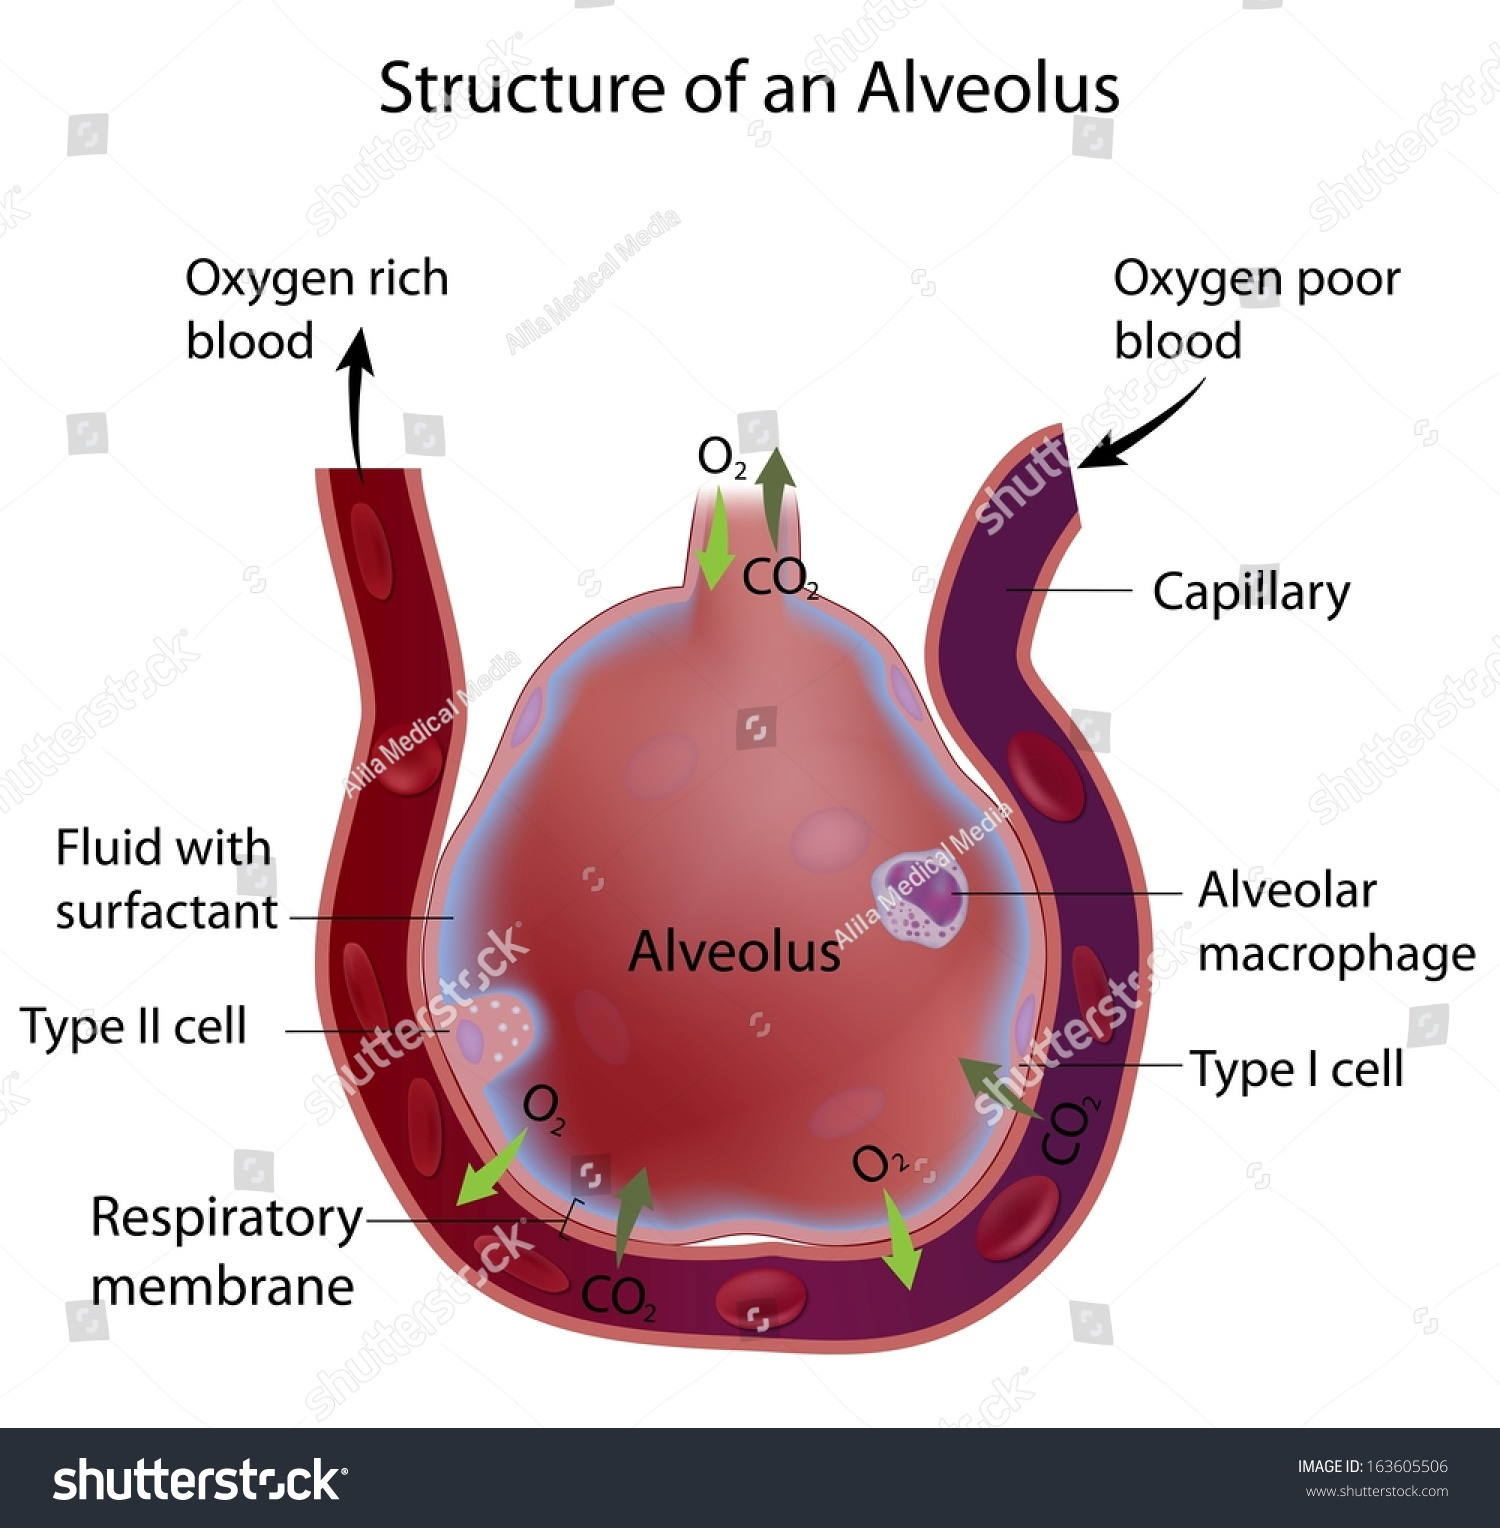 Royalty Free Stock Illustration Of Structure Alveolus Stock